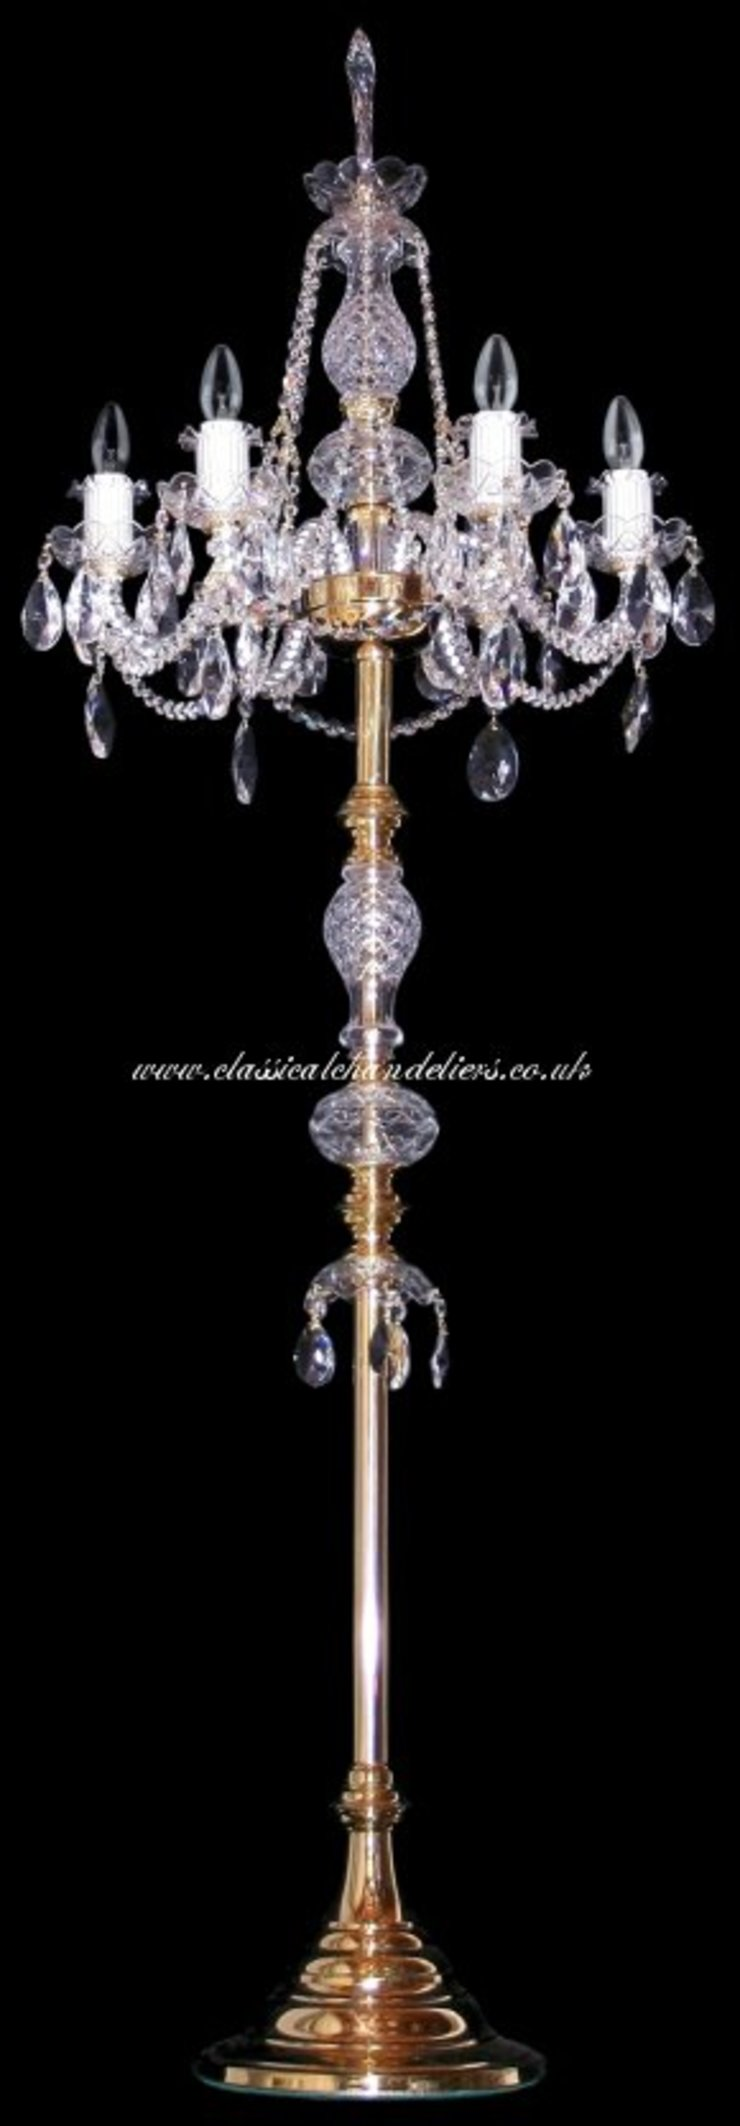 Traditional Beauty DFAK 09740-6-S For Sale In UK! Classical Chandeliers Garden Lighting